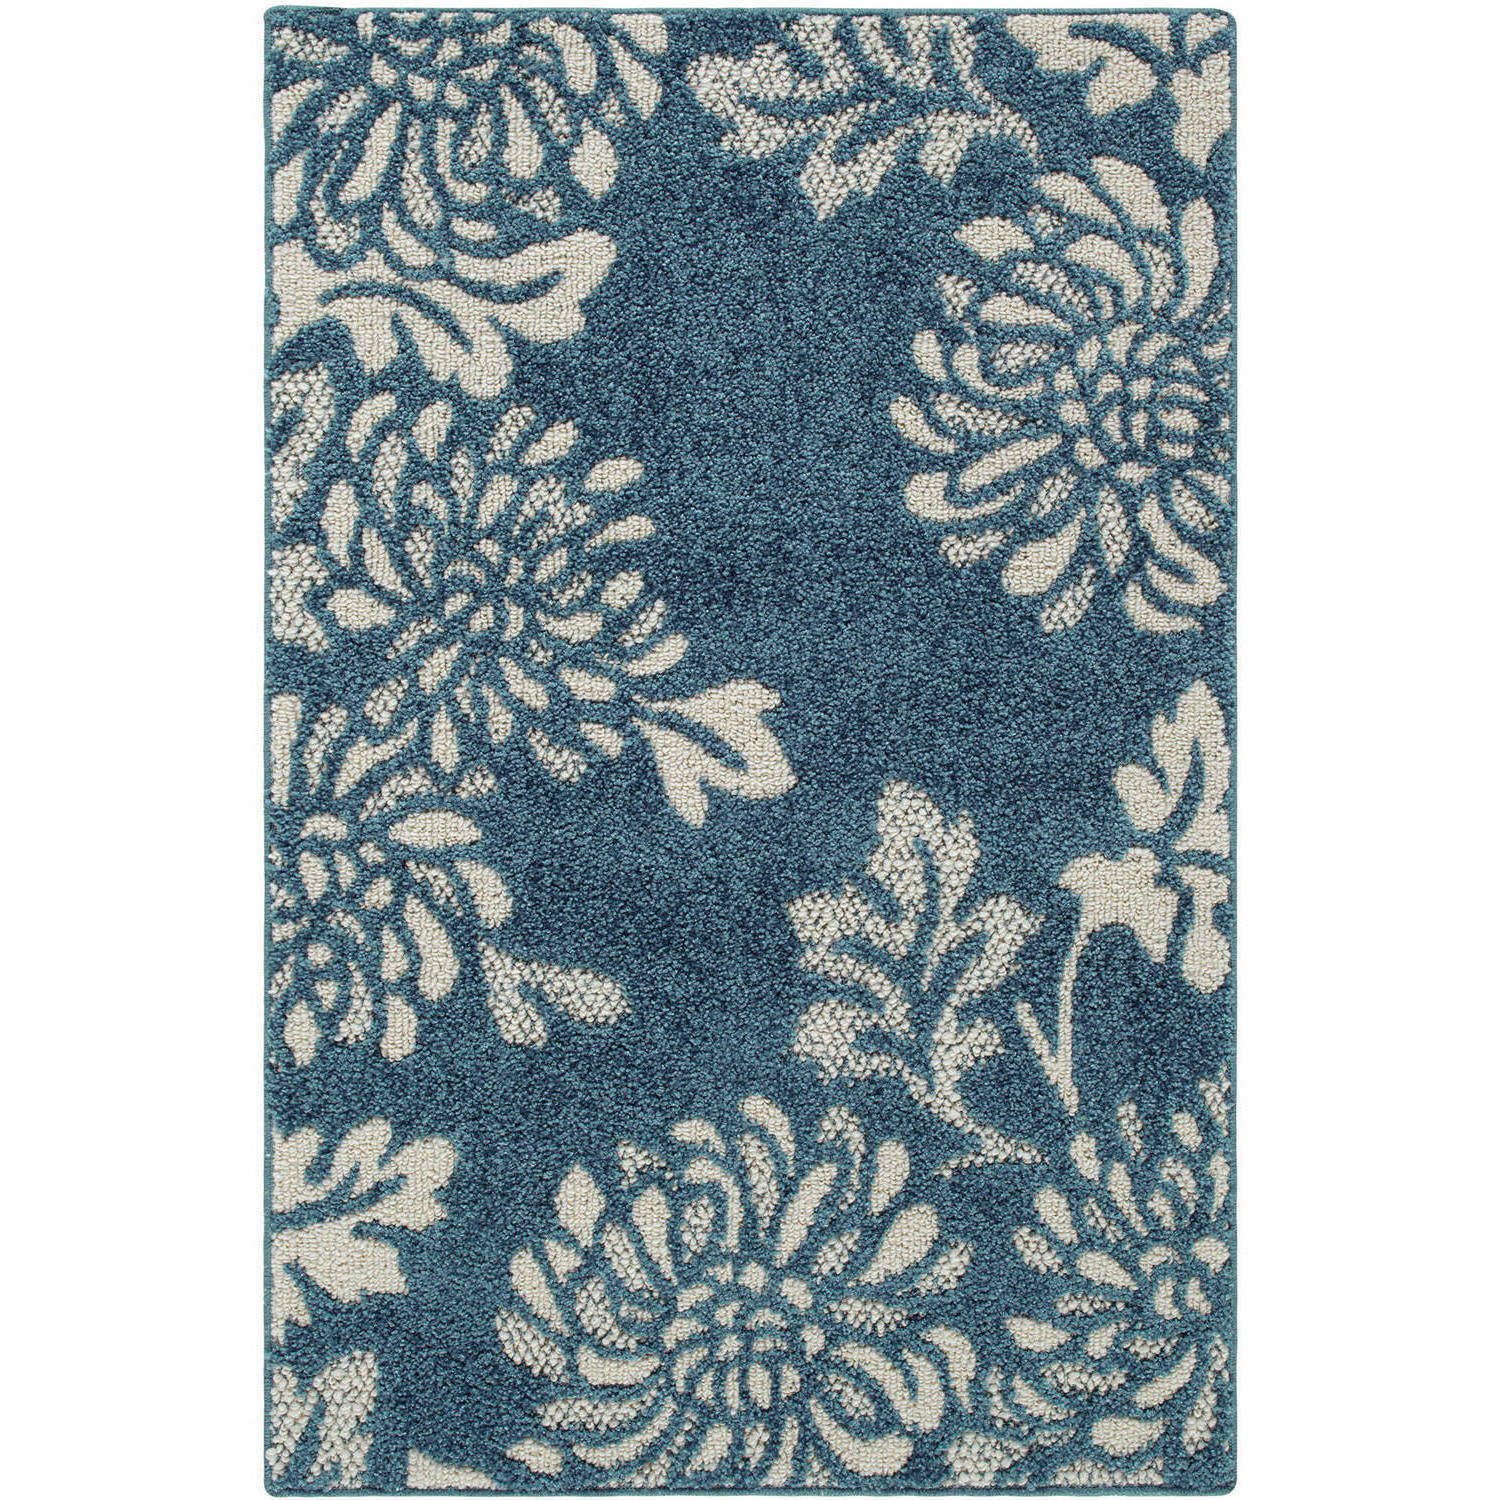 Better Homes and Gardens Floral Mums Area Rugs or Runner